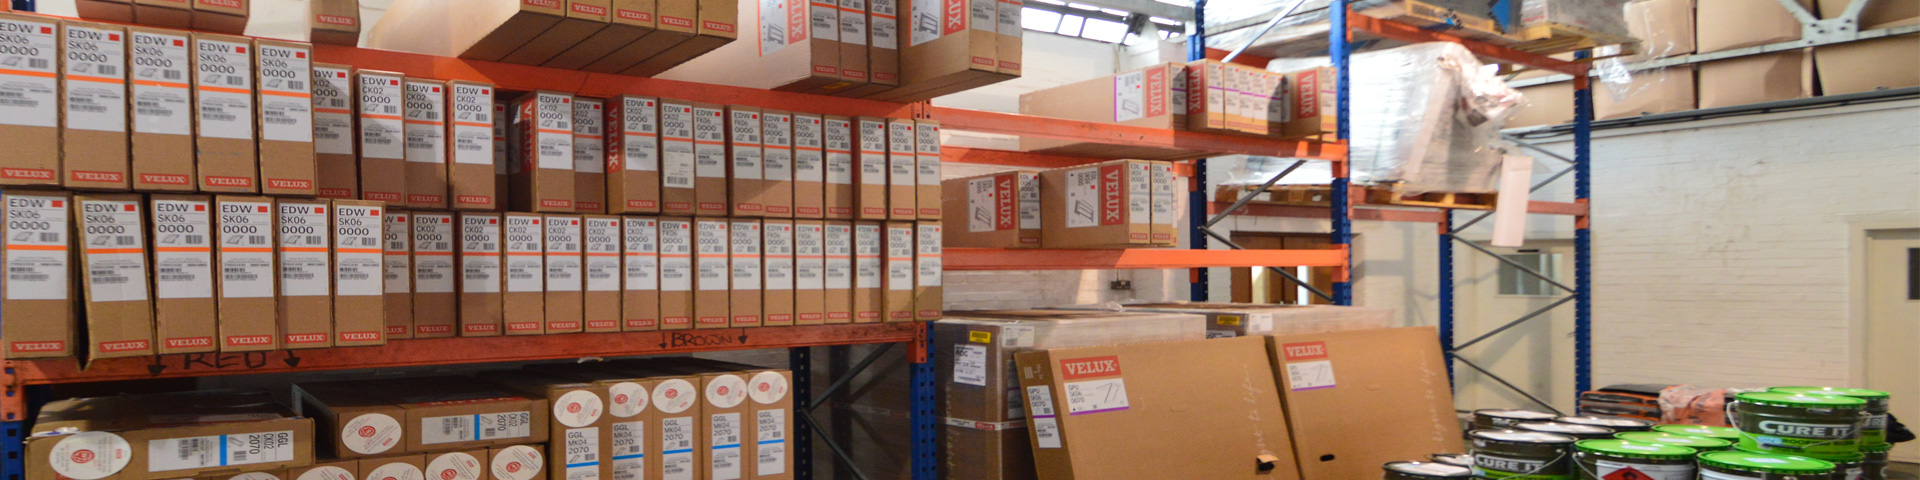 Velux Windows & Accessories In stock Now | About Roofing Supplies